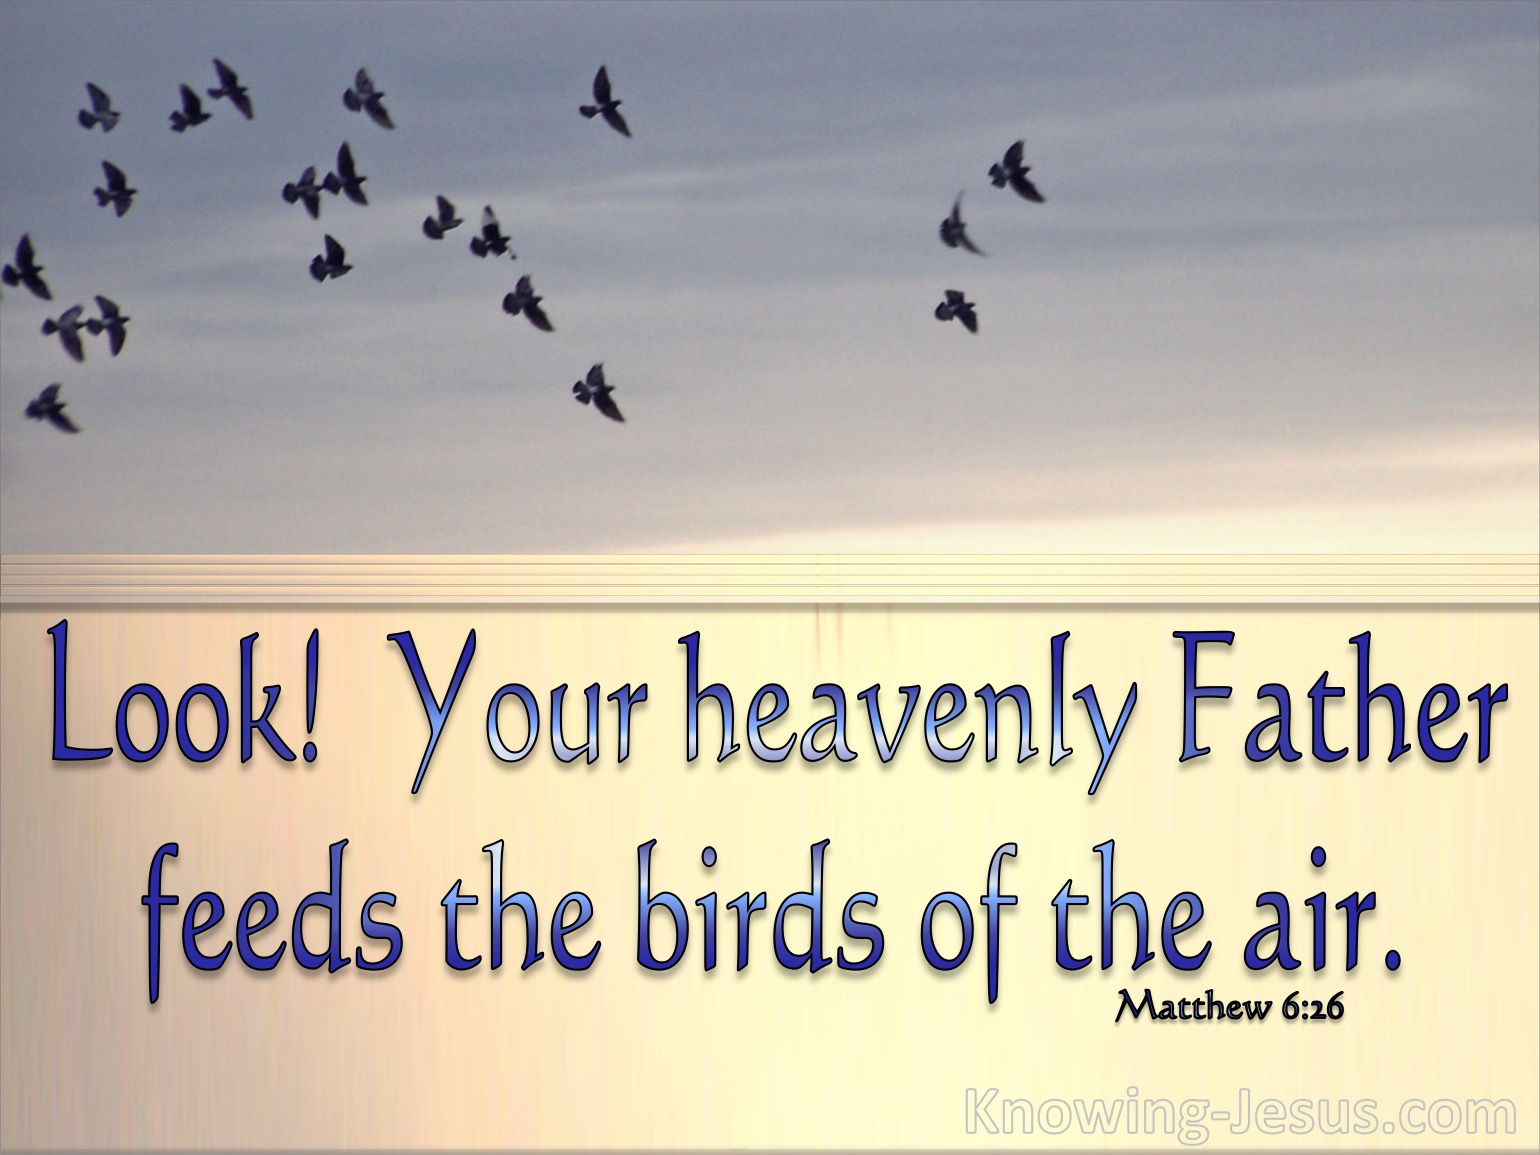 What Does Matthew 6:26 Mean?